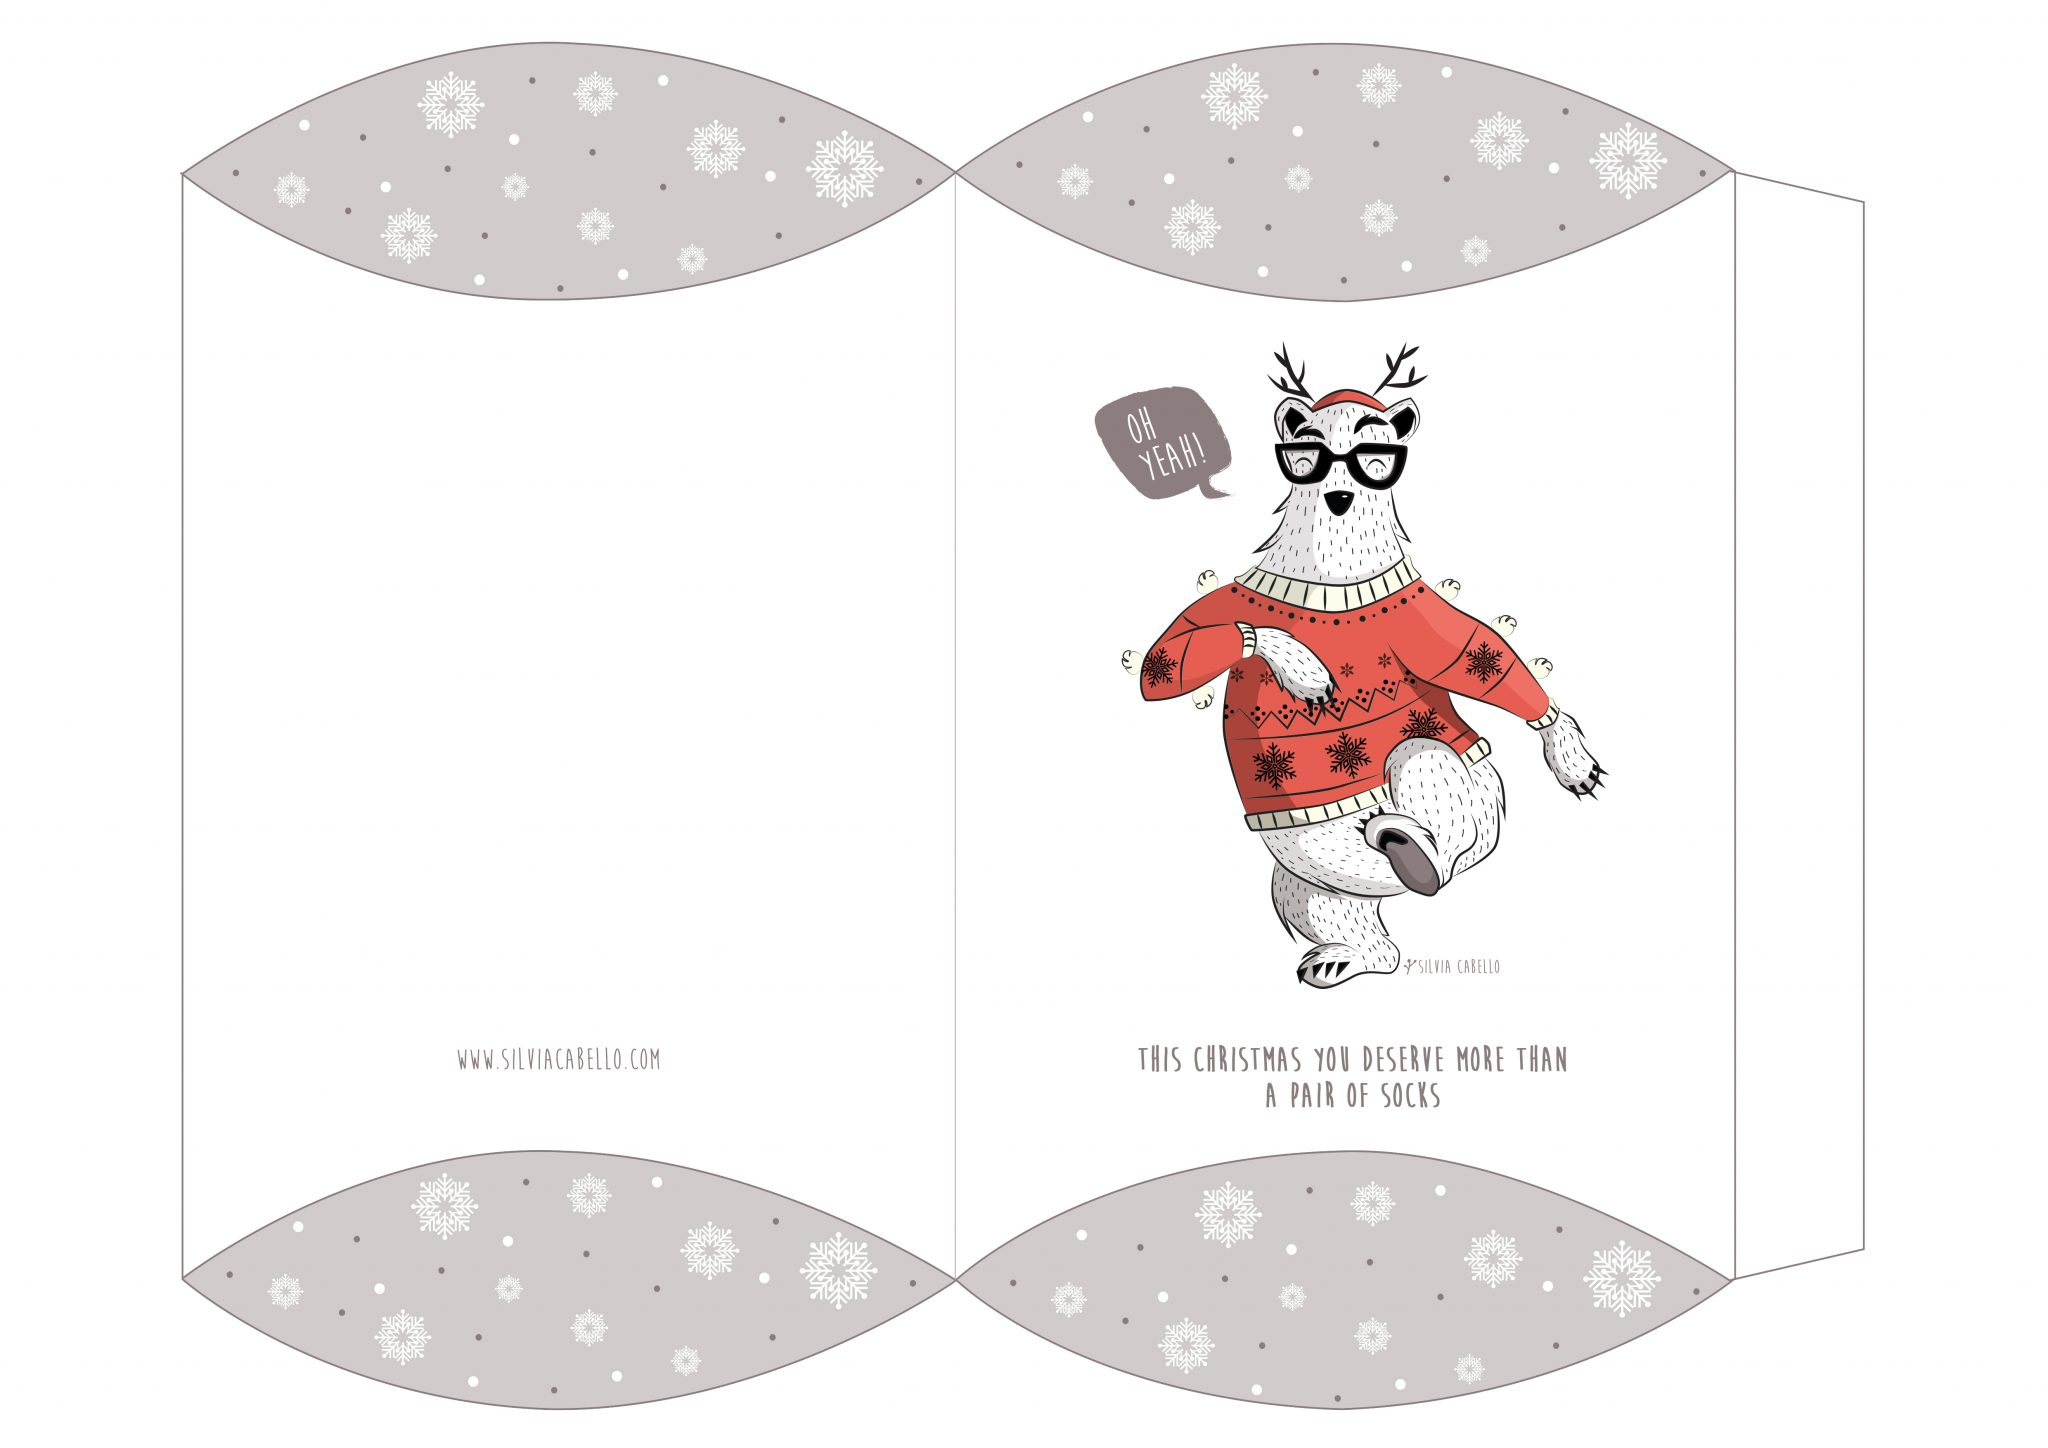 bear christmas character kids design illustration